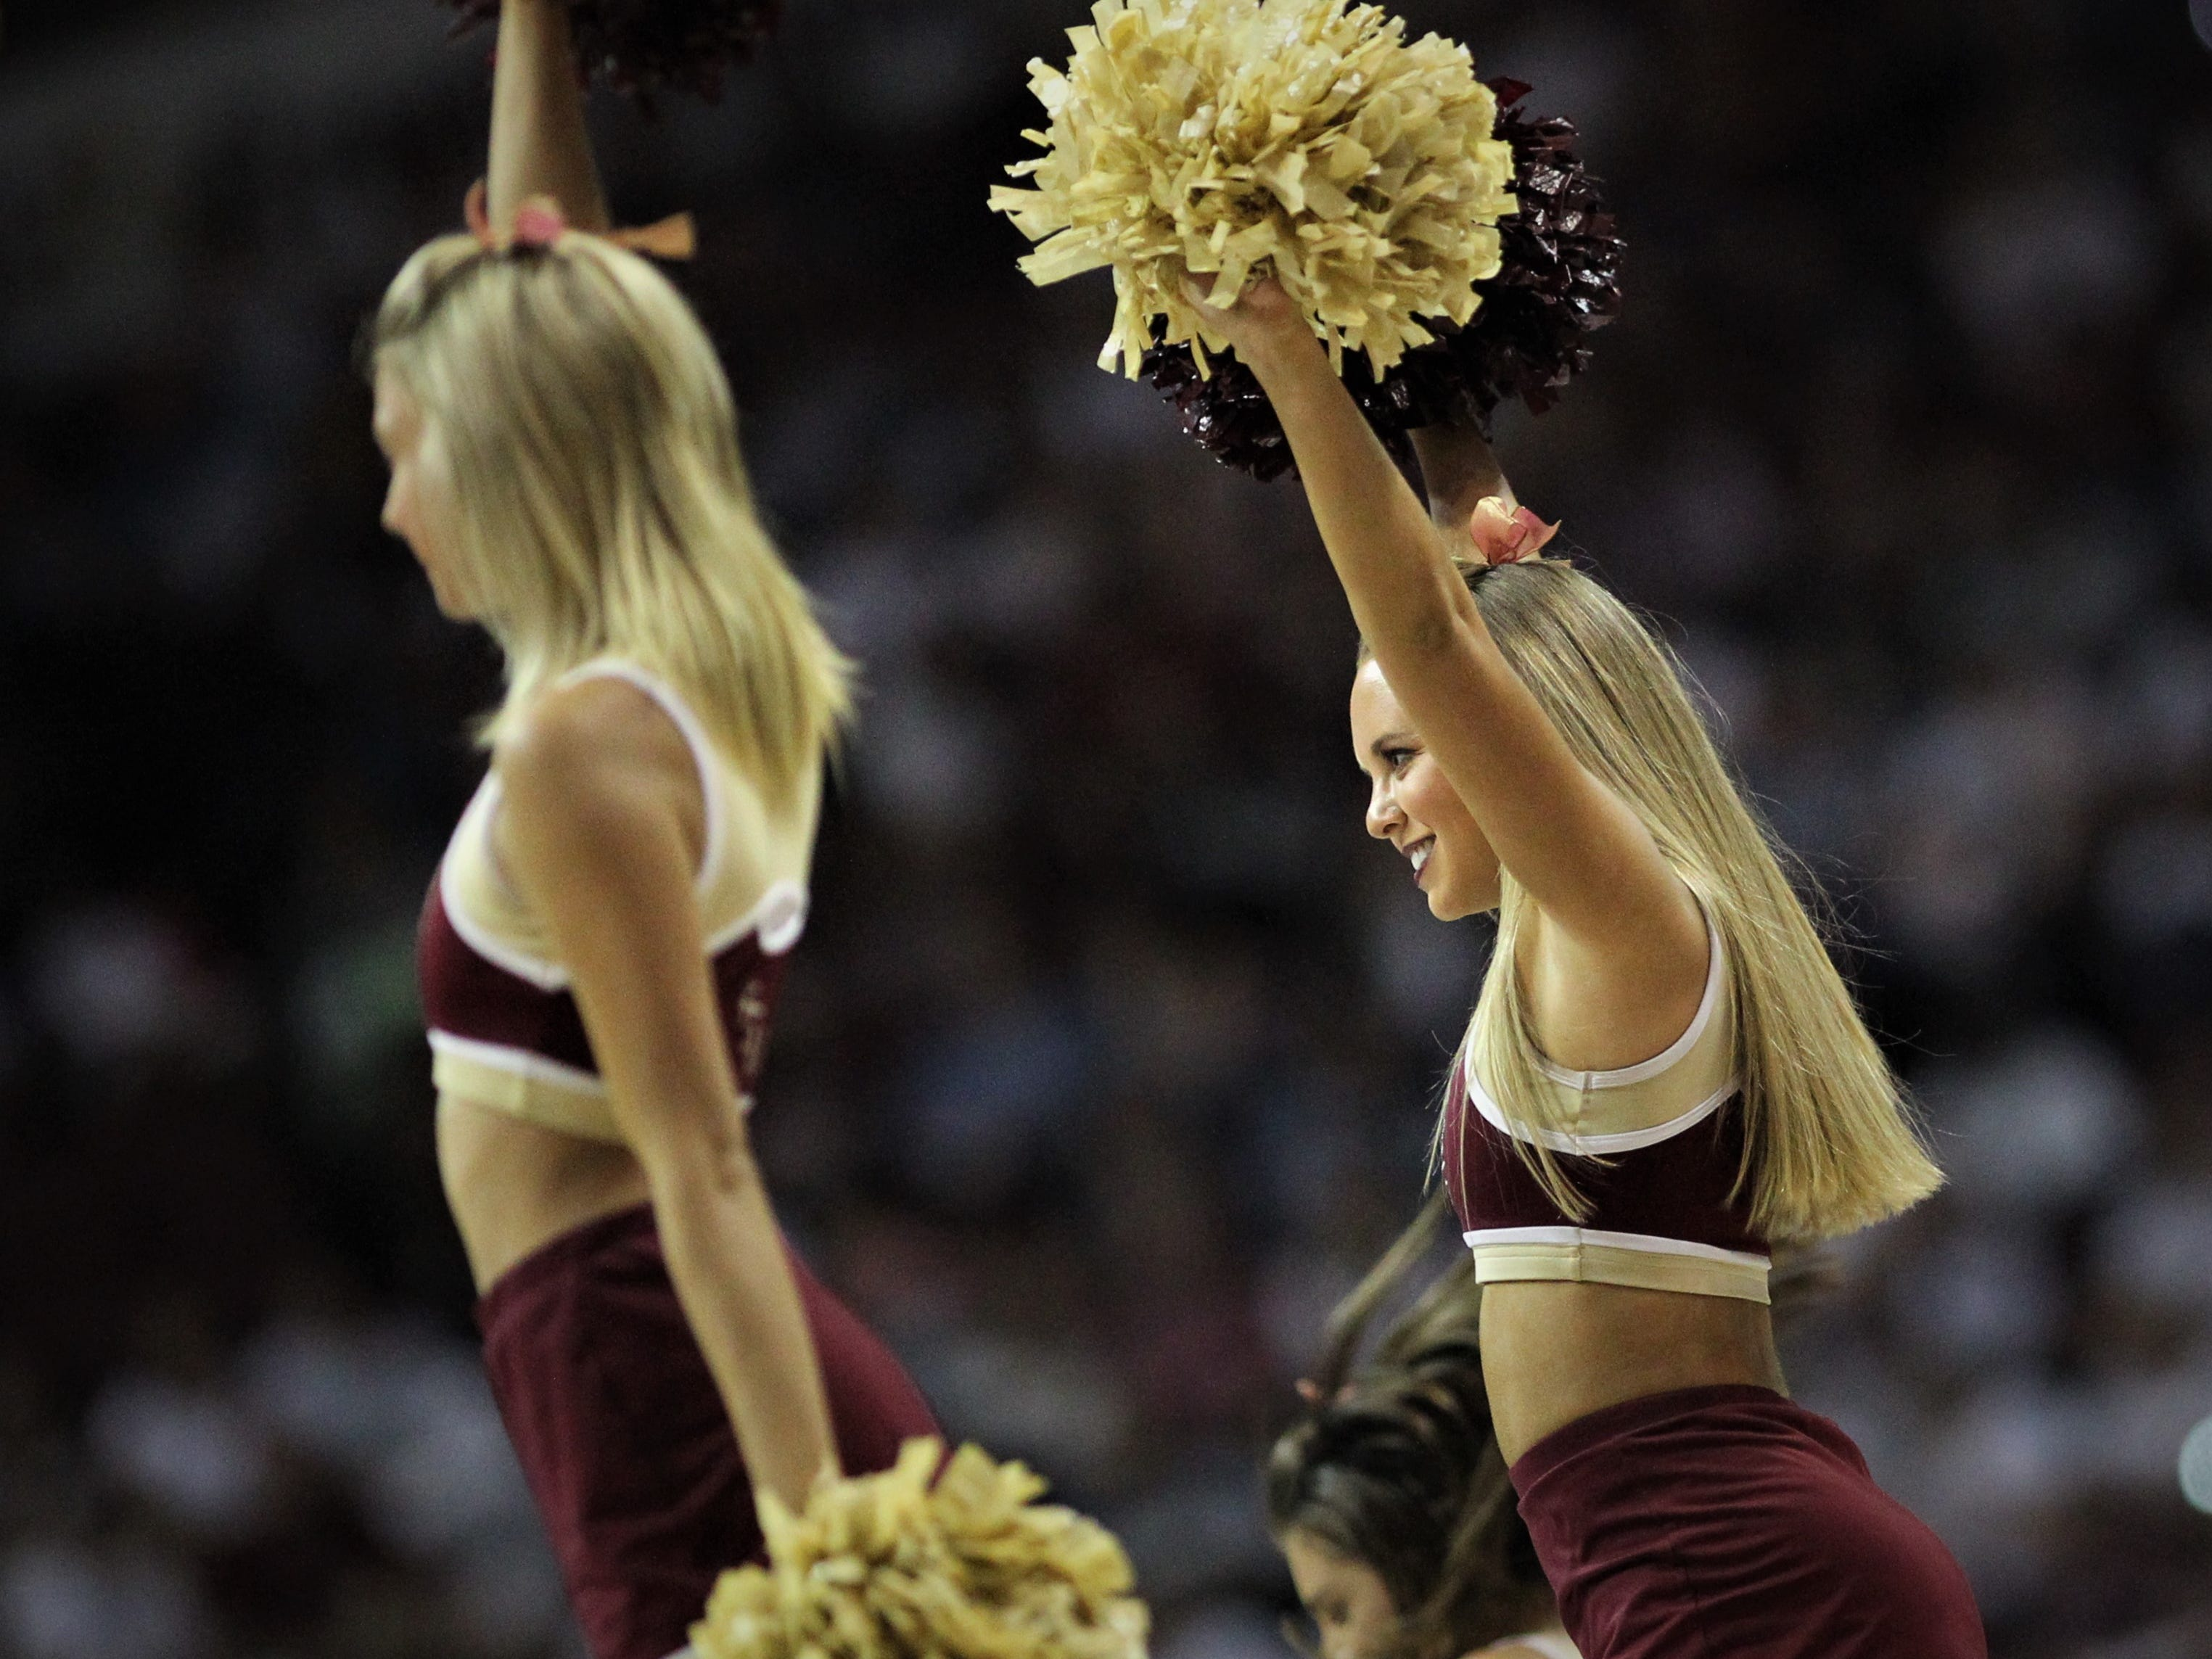 FSU's cheerleaders lead the crowd during the Sunshine Showdown game against Florida on Tuesday at the Tucker Civic Center.